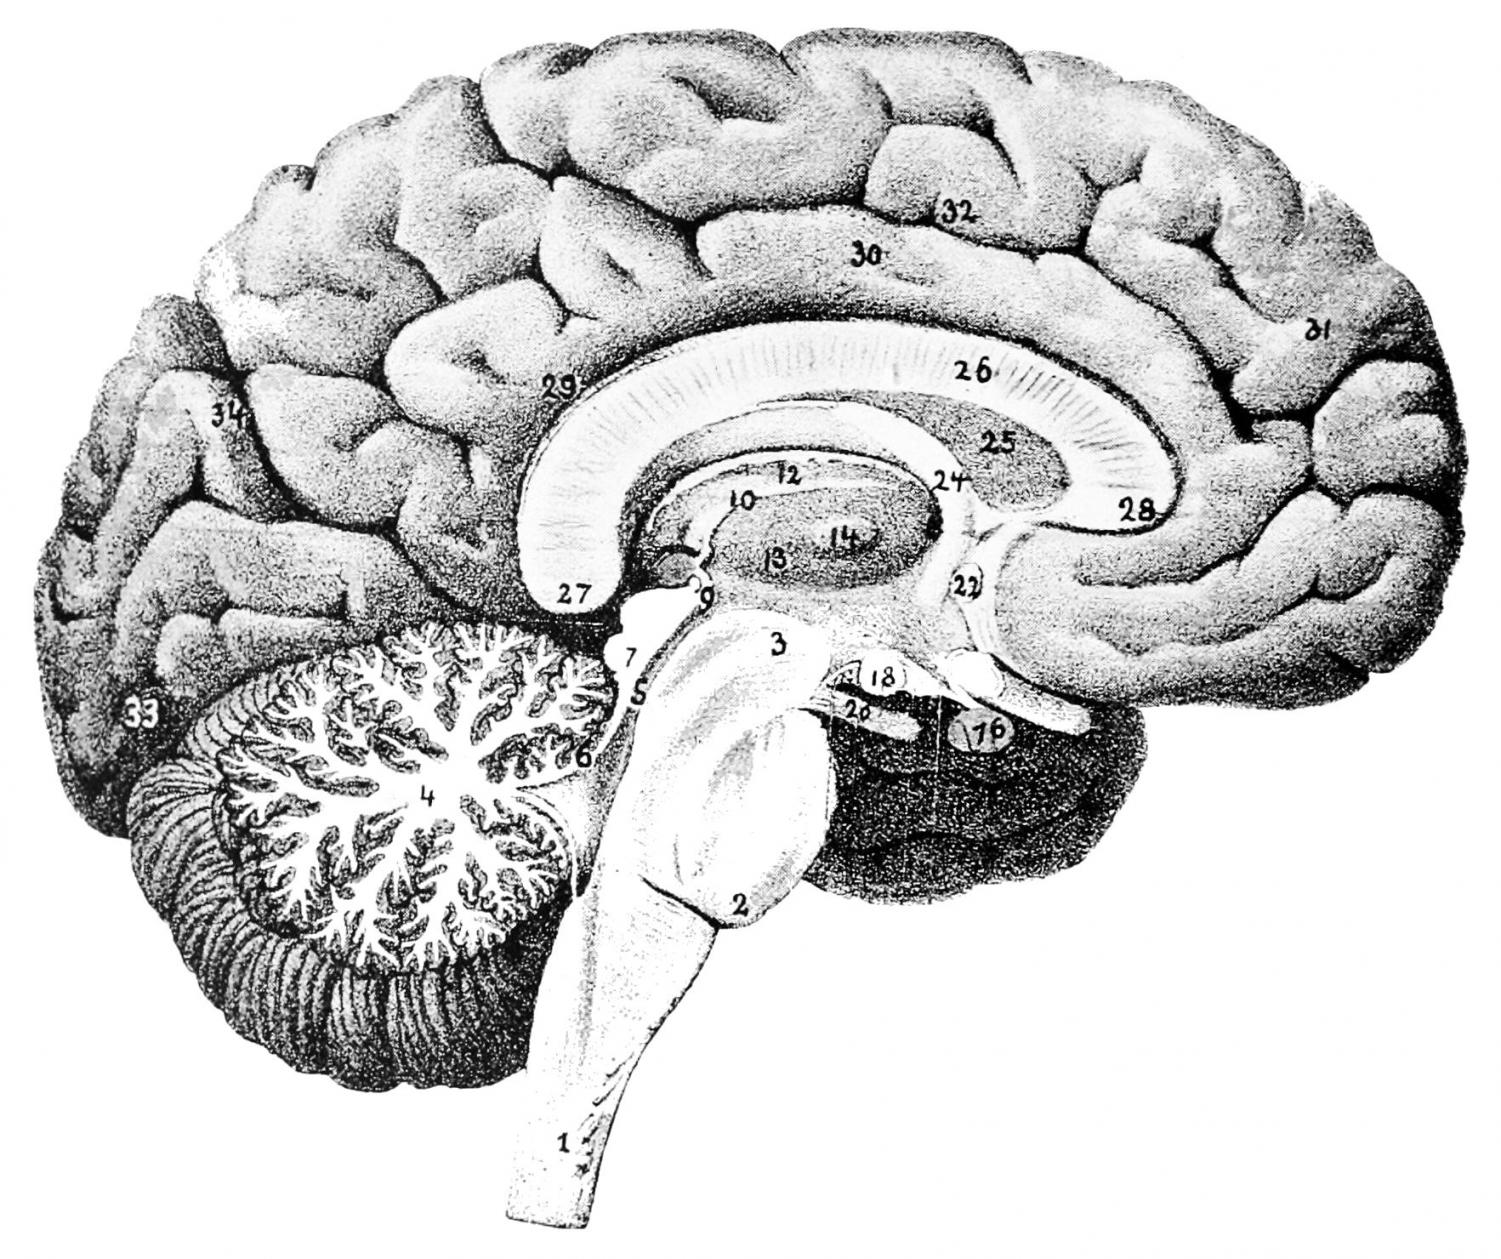 The brain is the most complex organ in the human body, and many things can cause injuries.